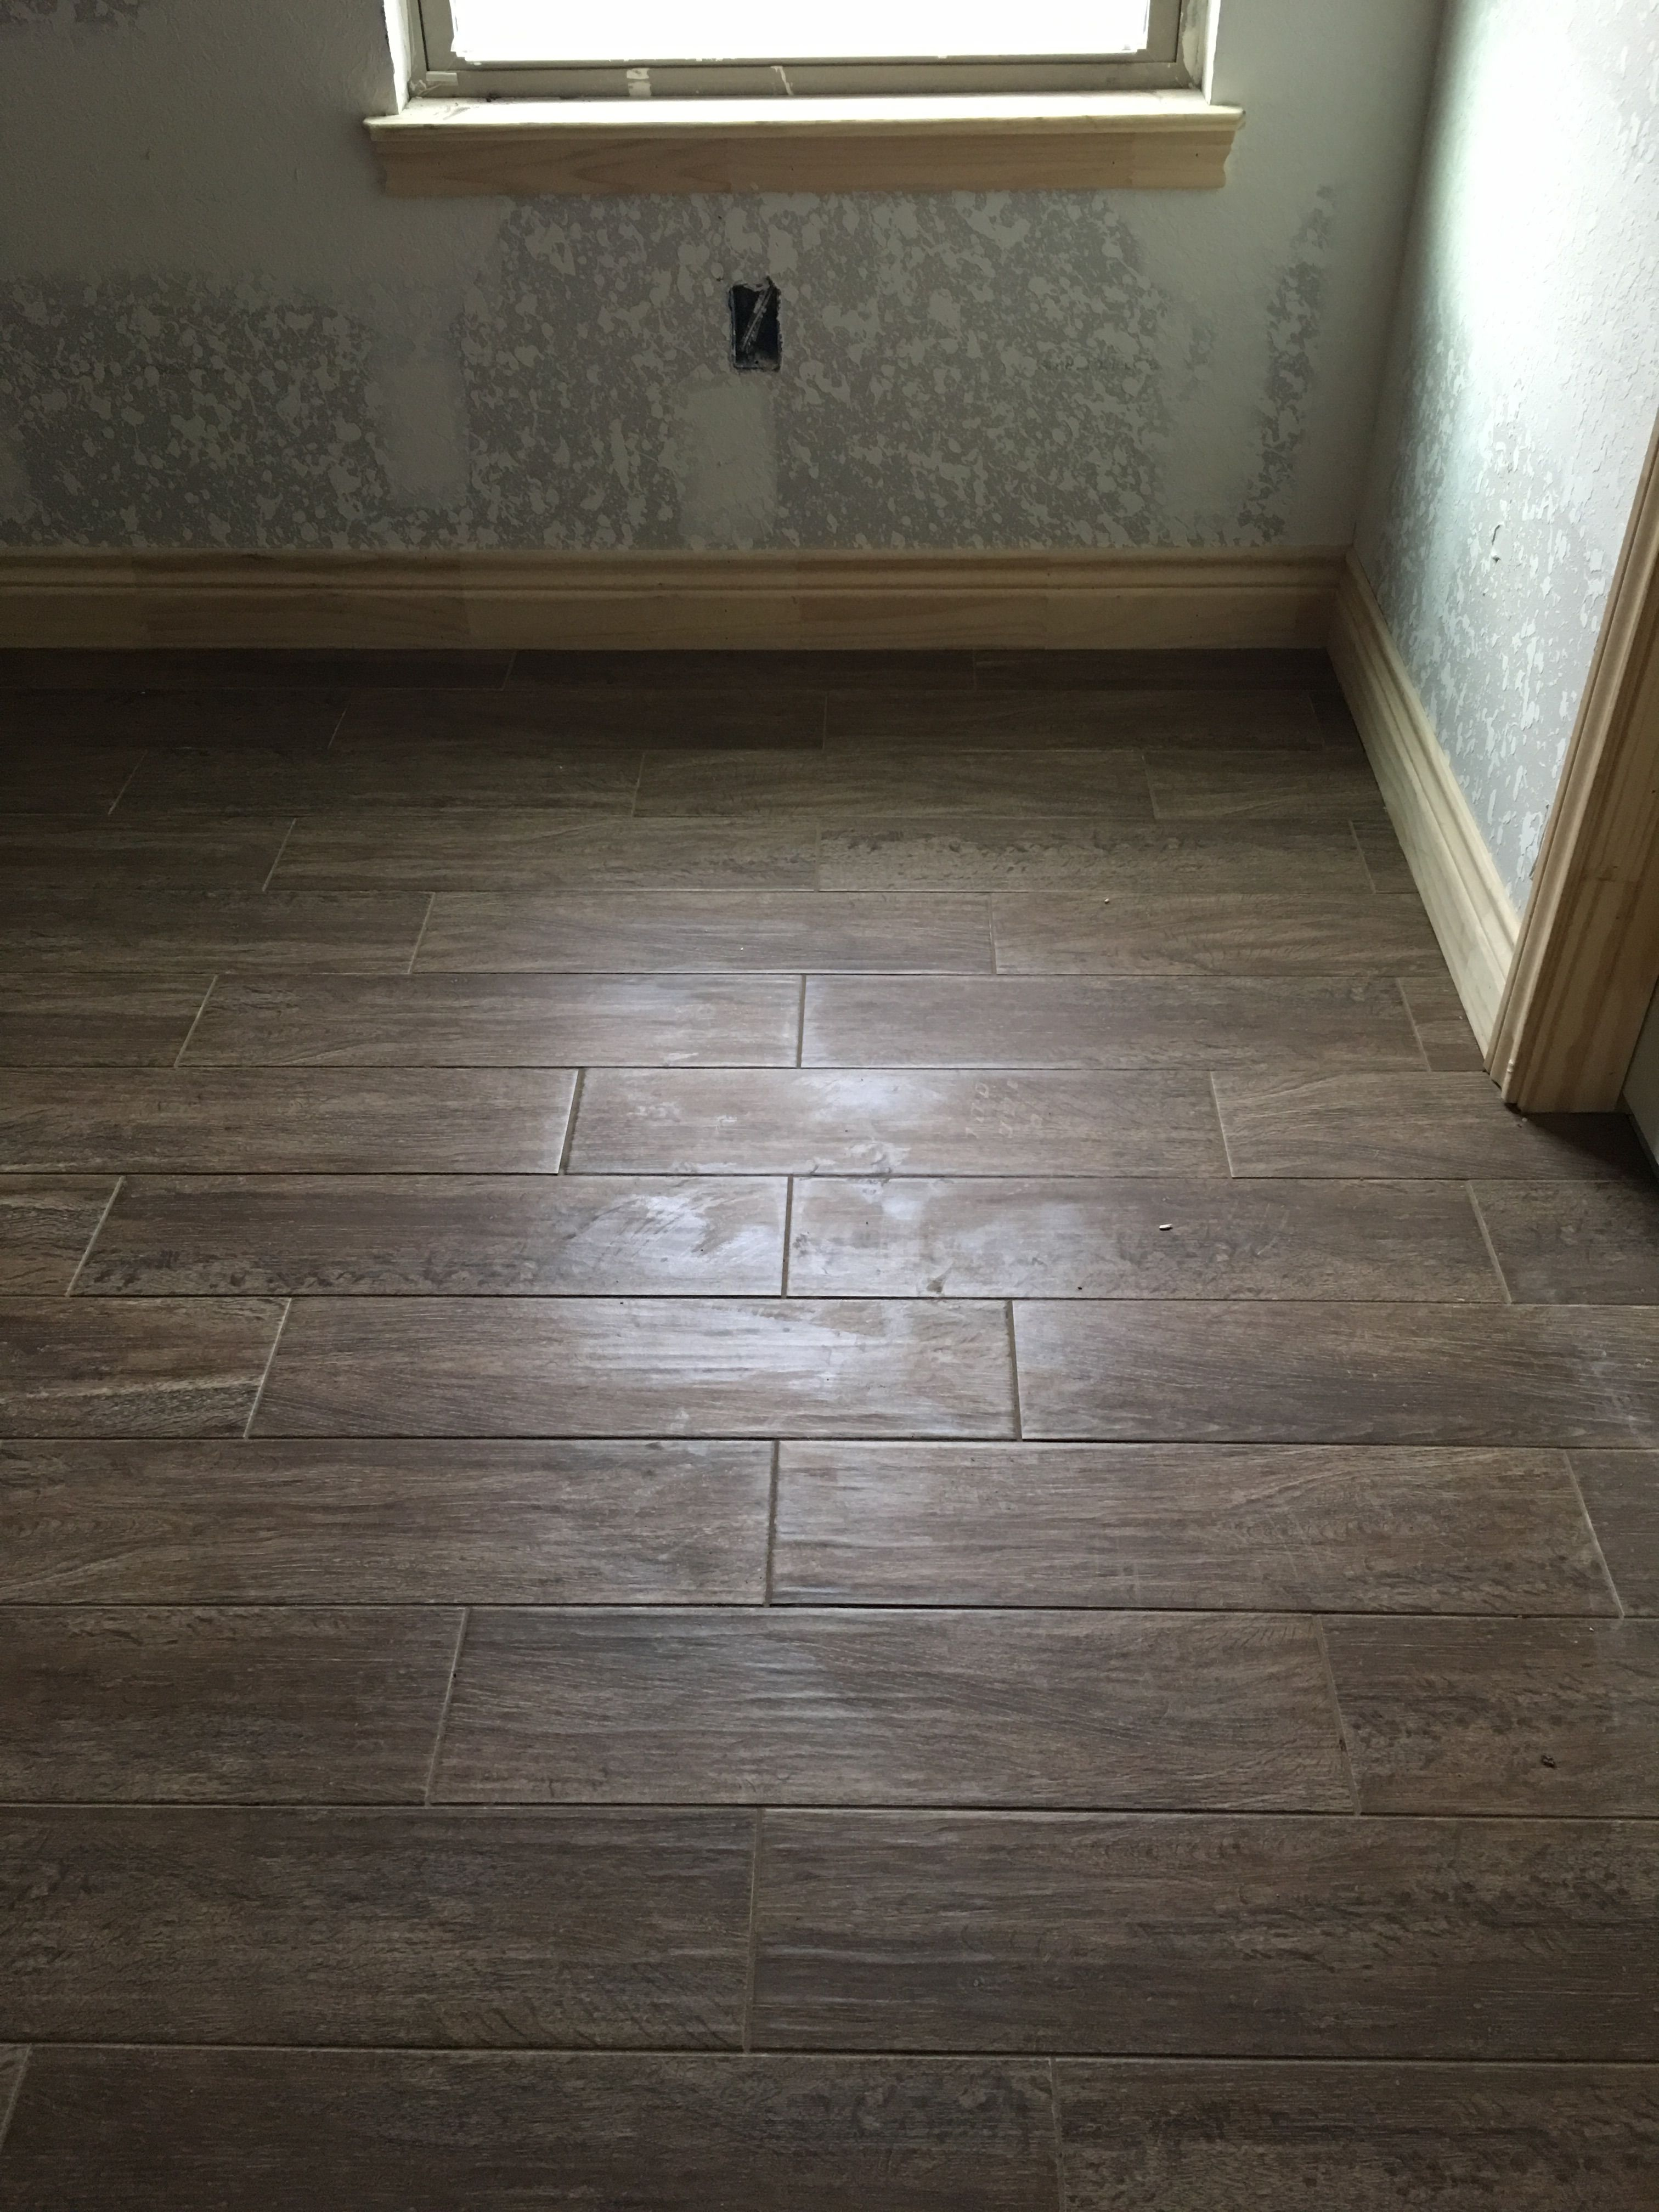 Emser Woodwork Eugene 6 X 24 W Texrite Chromaflex Grout Sahara Brown 1 8 Grout Lines House Flooring New Homes Emser